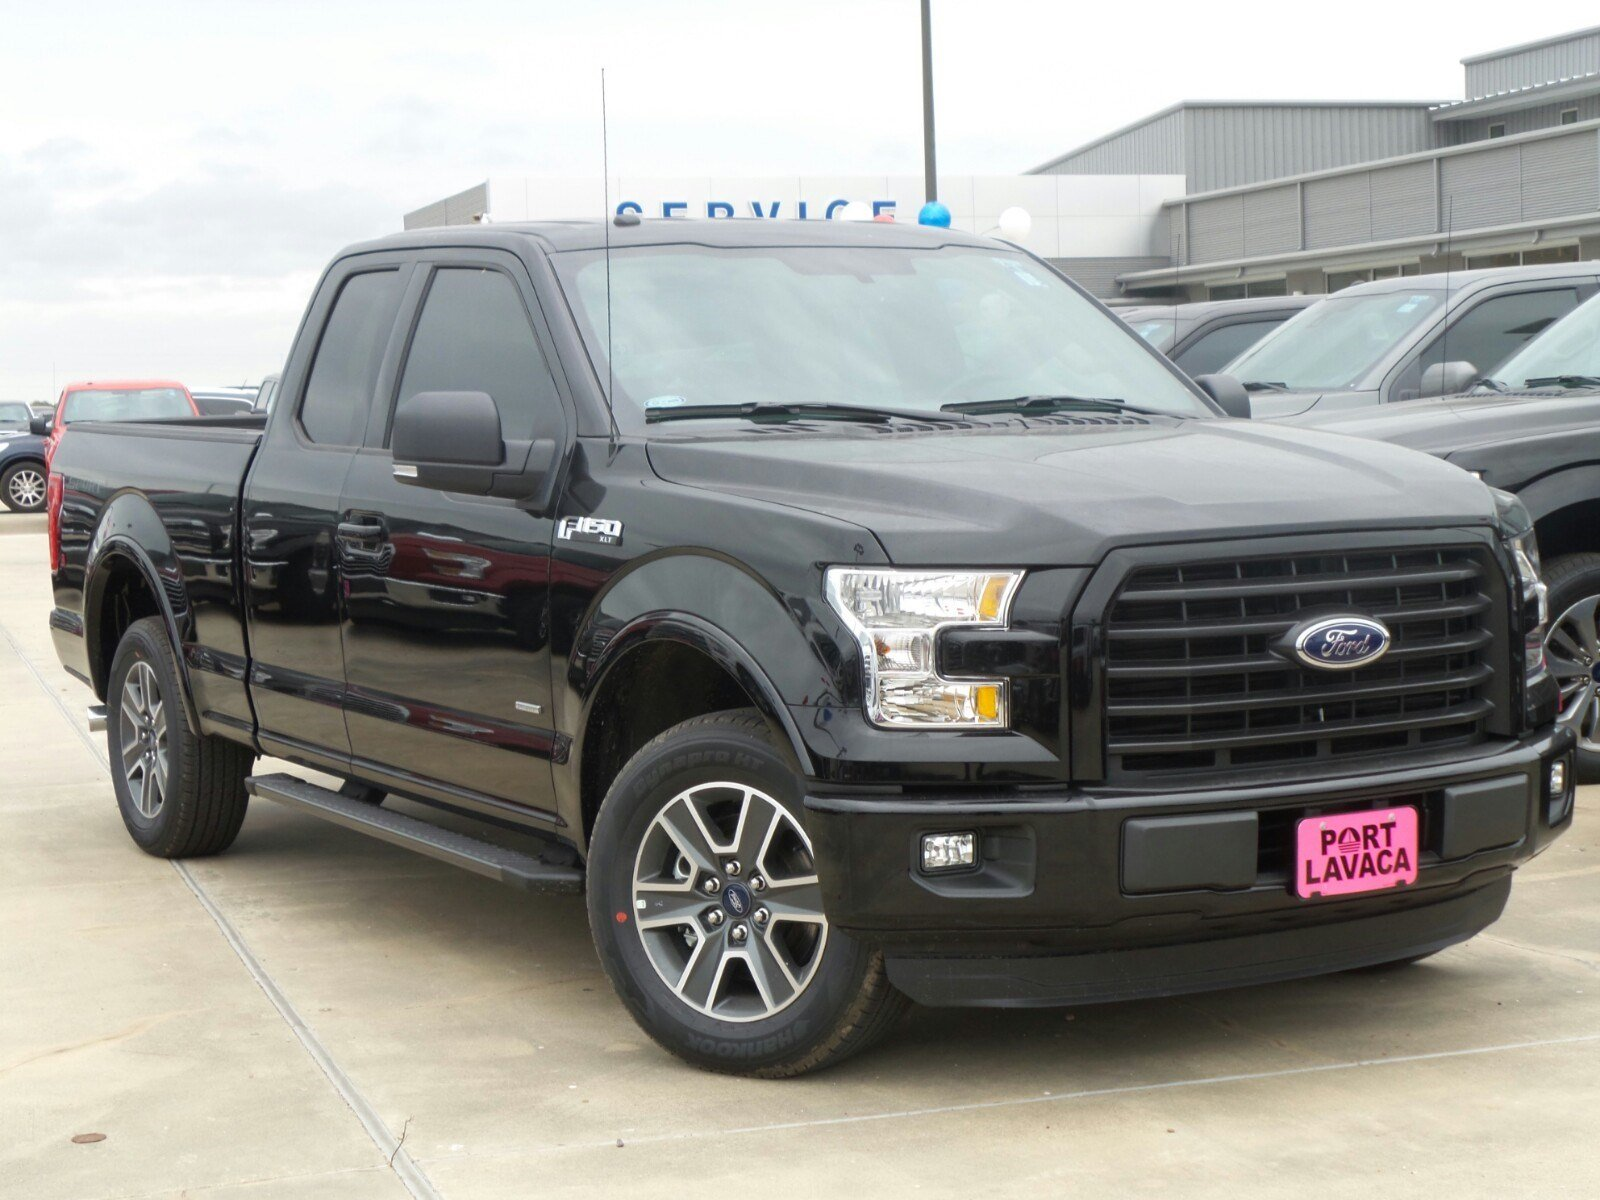 new 2016 ford f 150 xlt extended cab pickup in port lavaca kg04408 port lavaca ford. Black Bedroom Furniture Sets. Home Design Ideas